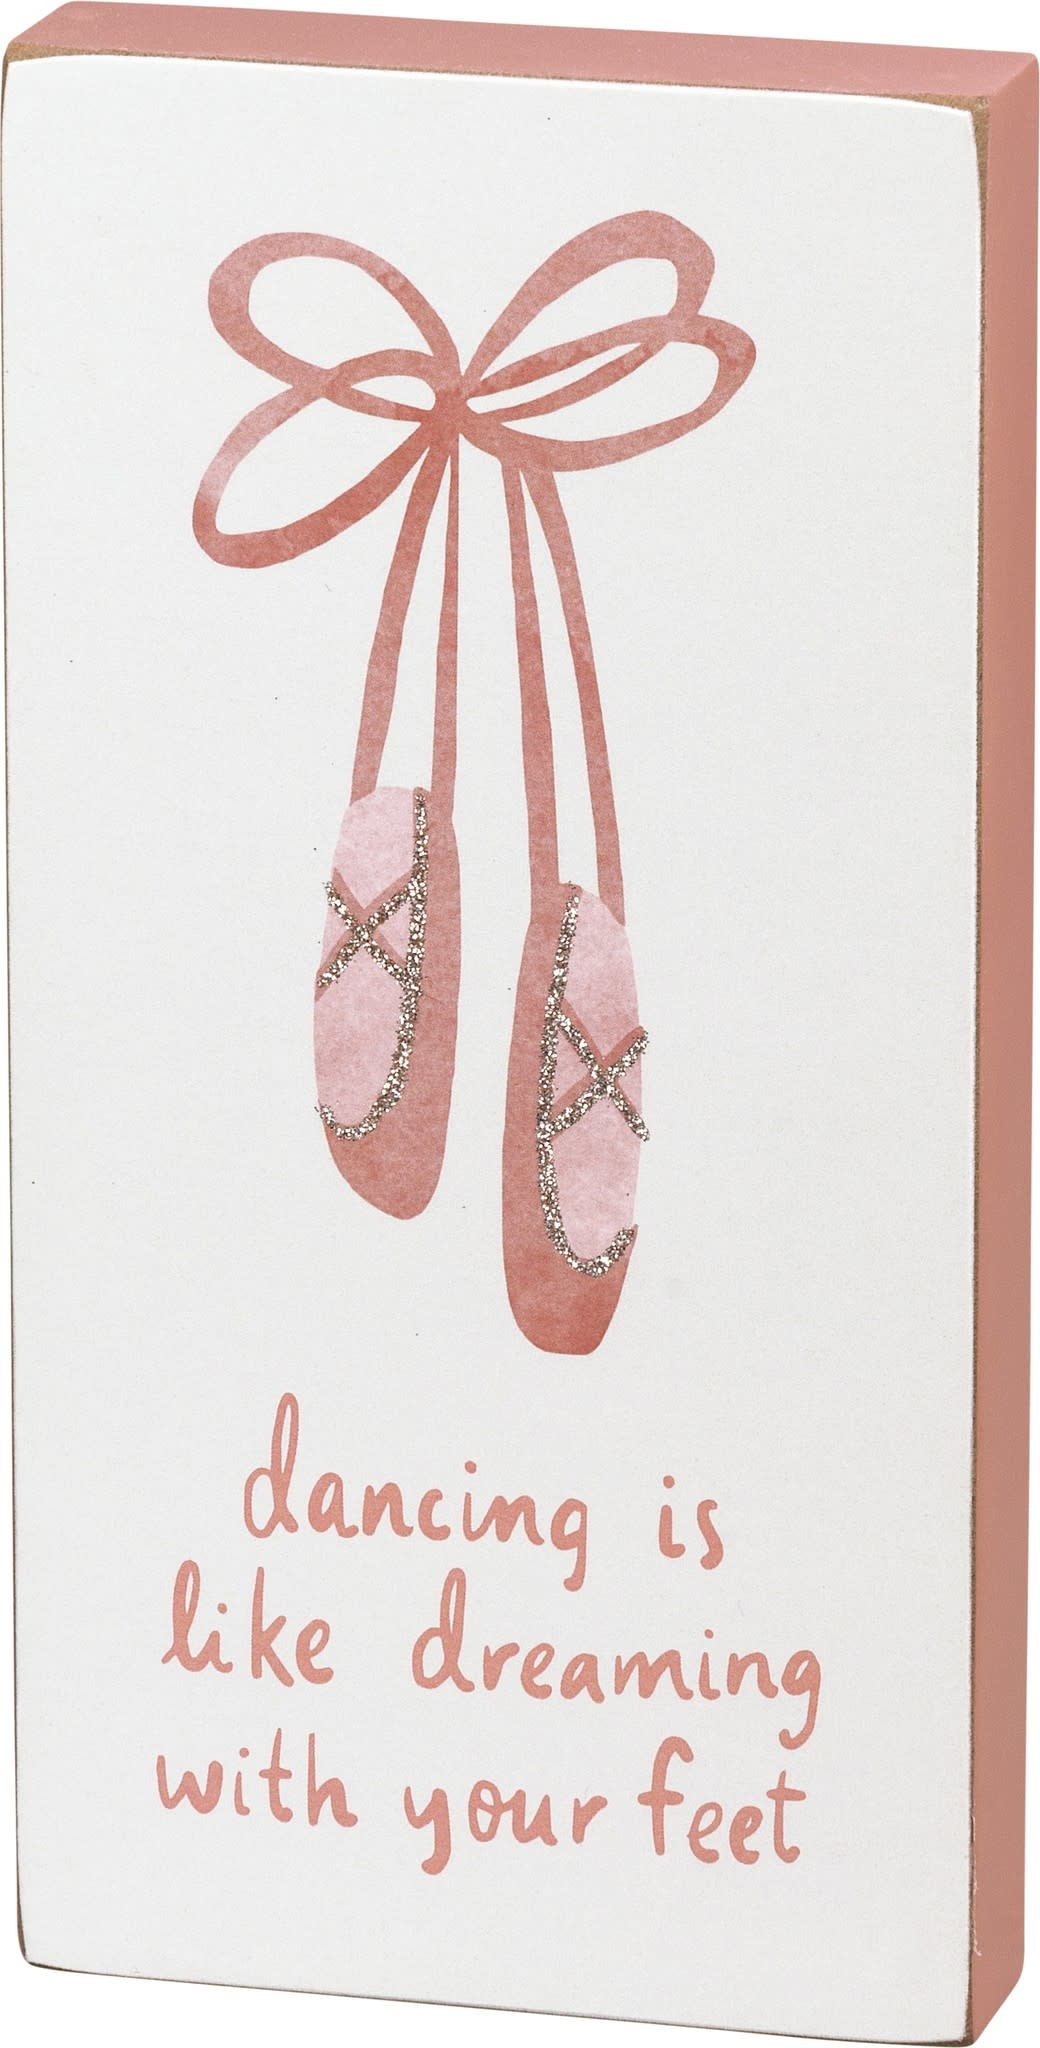 """Plaque """"Dancing is Like Dreaming with your feet"""", P104404, Rose Ballet, 4"""" x 8"""" x 1"""""""